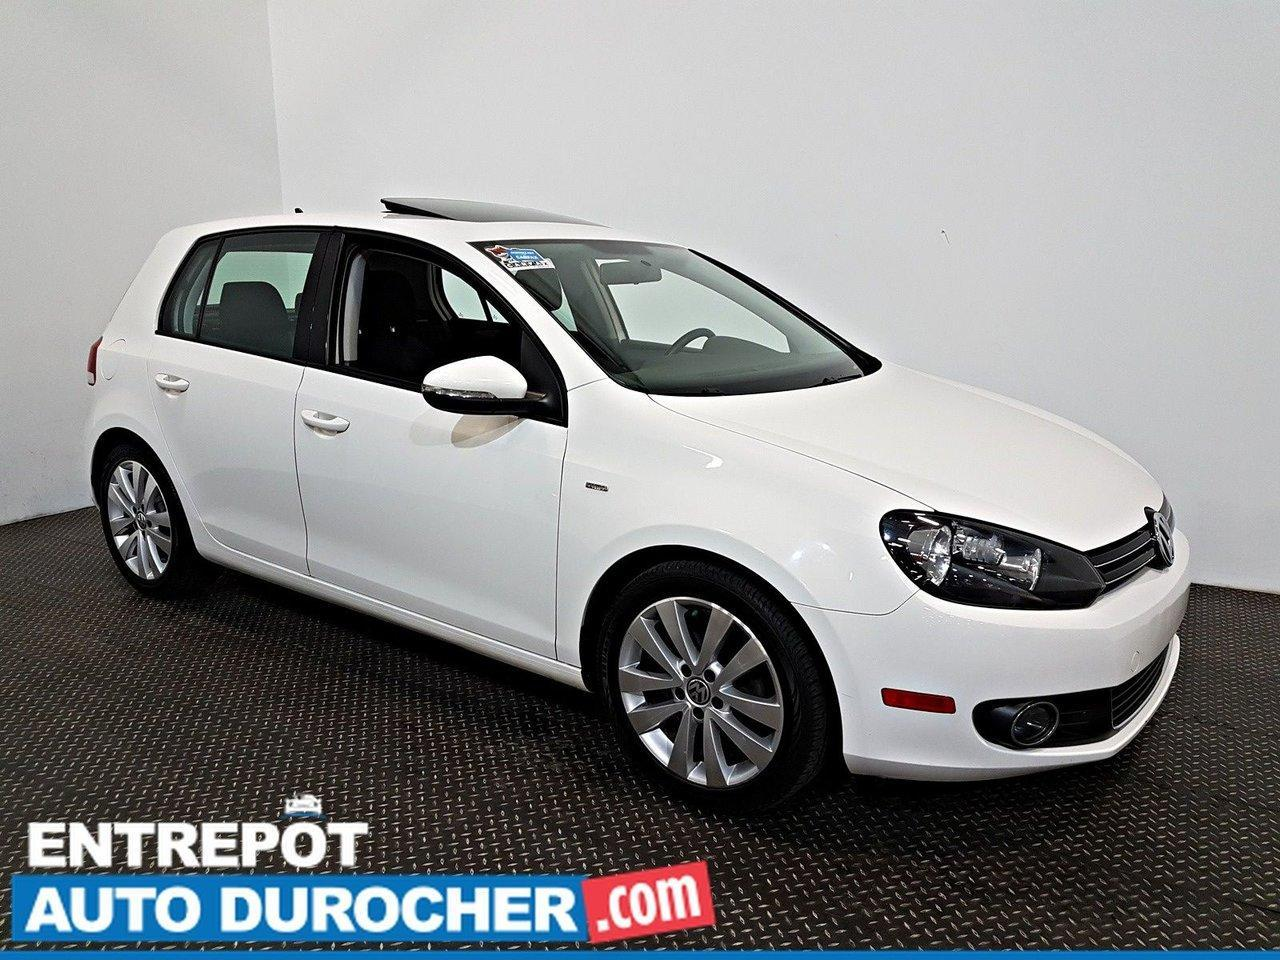 used 2013 volkswagen golf wolfburg toit ouvrant - a c - sièges chauffants for sale in laval, quebec carpages.ca